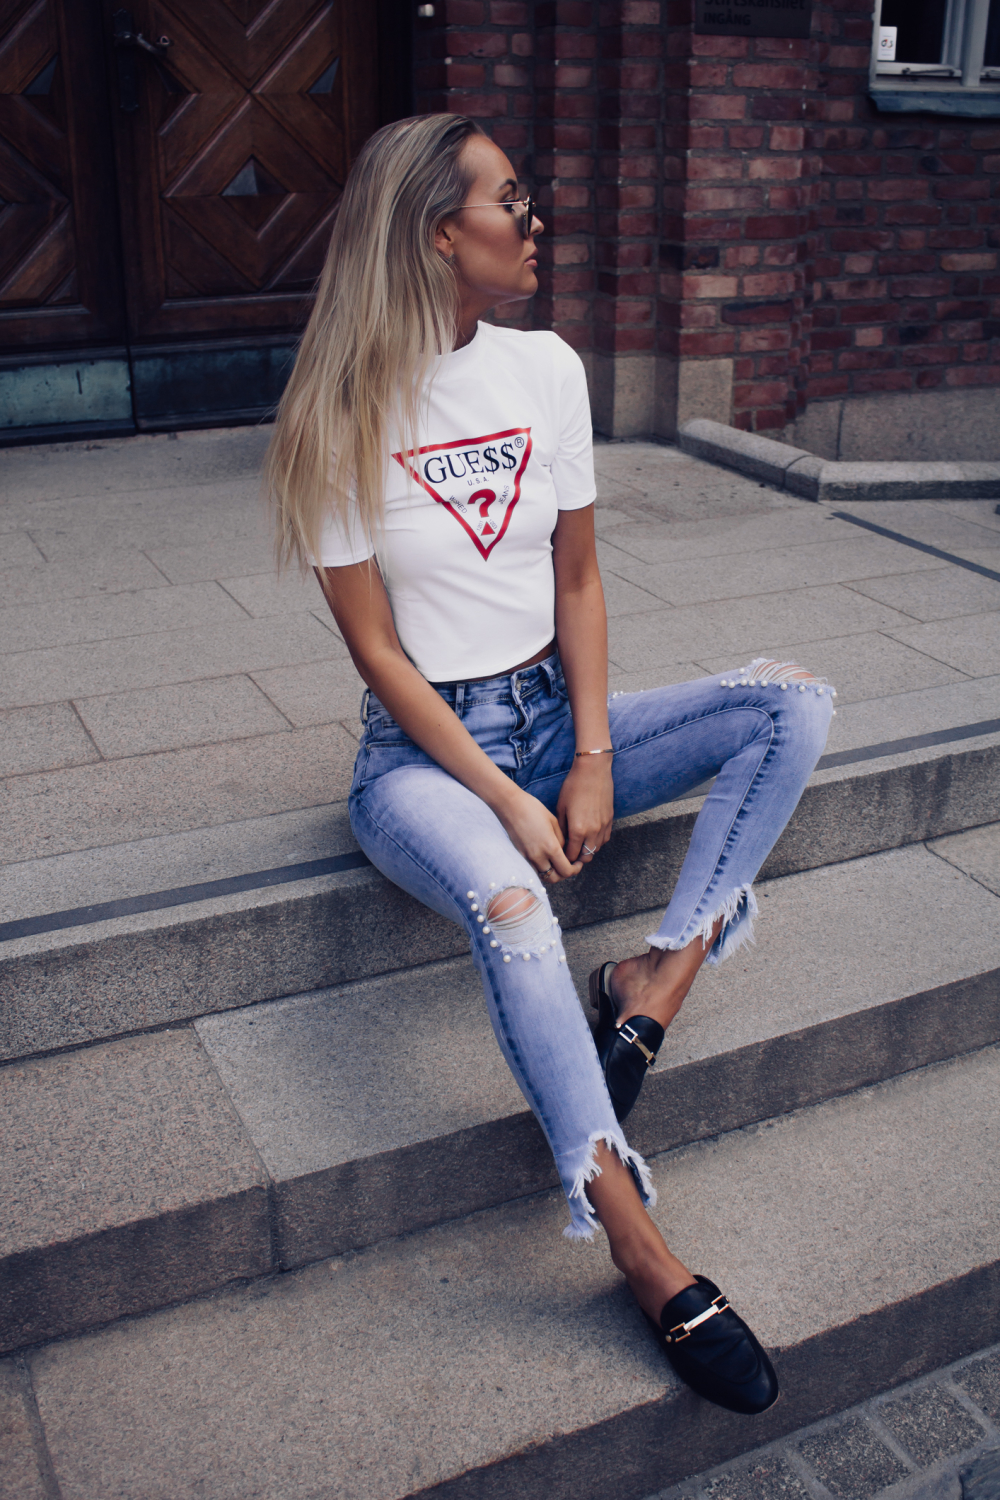 4fa9f1e530e Crop Top - Guess A$AP Rocky collection/ HERE Jeans - Miss Bardo/ HERE (on  sale!) Shoes - Din Sko Sunglasses - Ray Ban